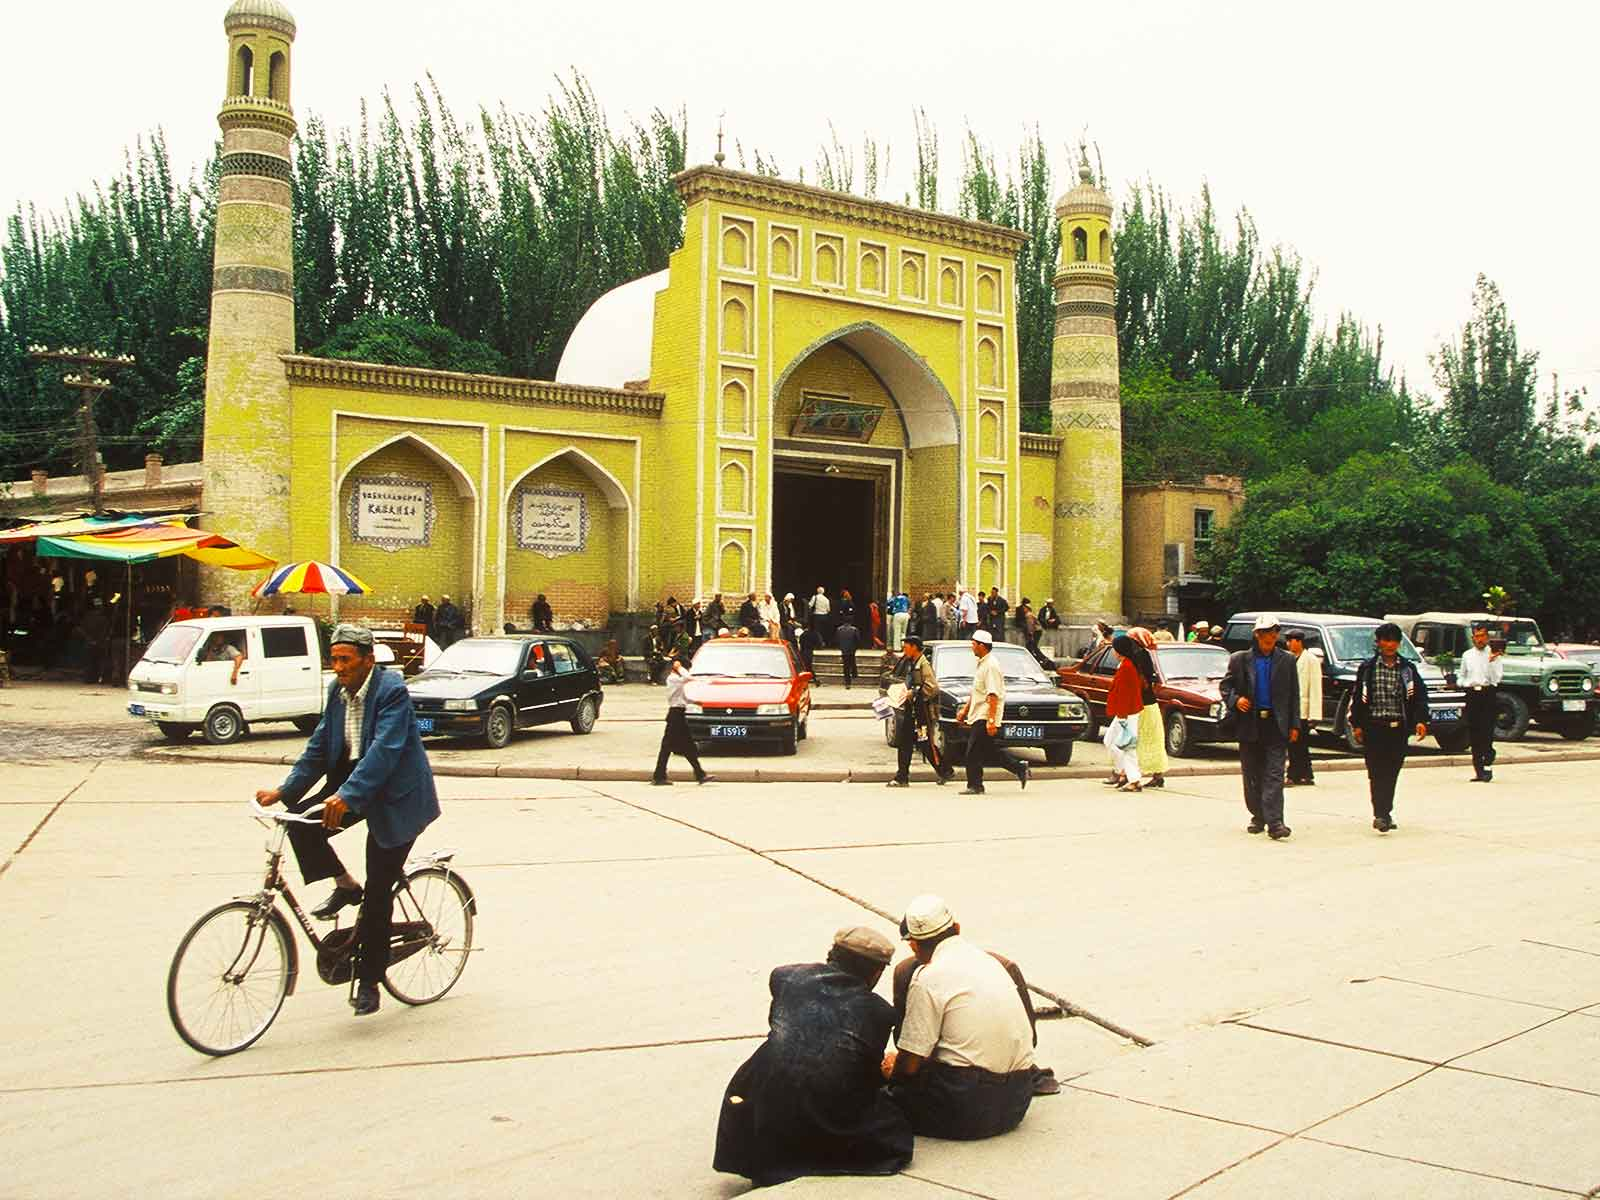 Islamic Culture - Id Kah Mosque - China Silk Road Journal - Dr Steven Andrew Martin - Research